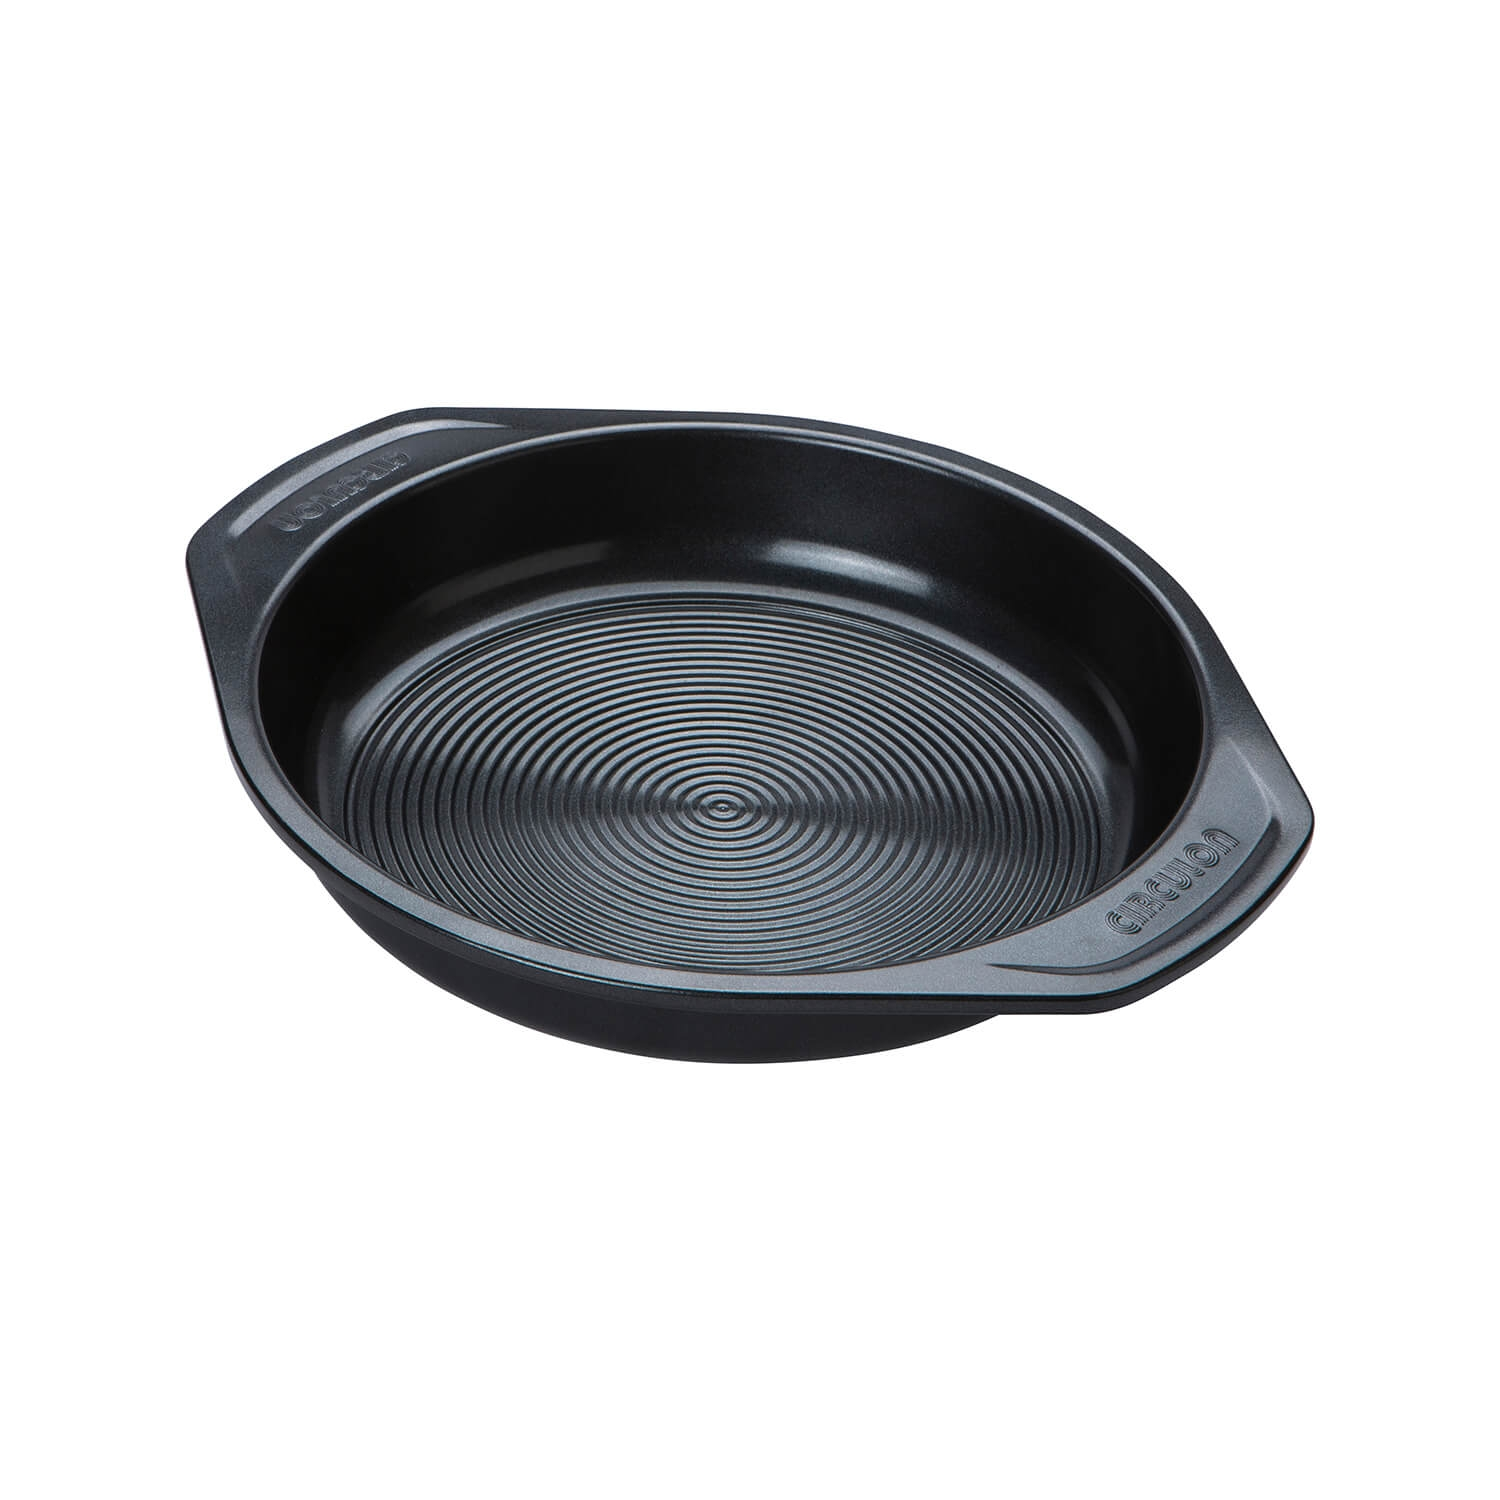 "Image of Circulon Round Cake Tin 9"", Black"